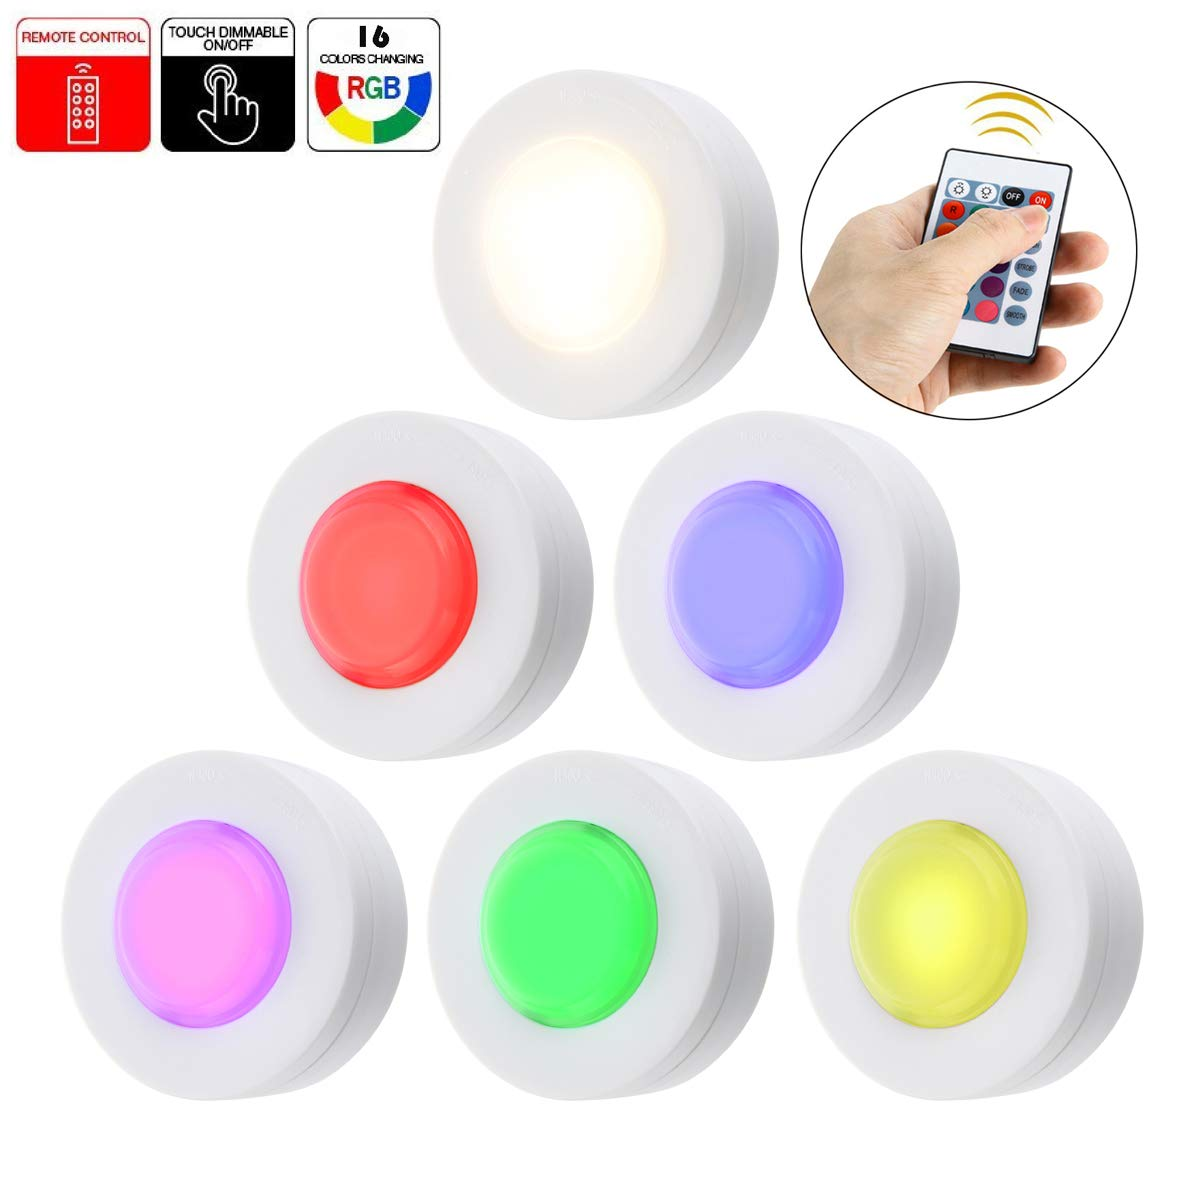 Wireless Color Changing LED Puck Light 6 Pack with Remote Controls | LED Under Cabinet Lighting | Closet Light | Battery Powered Lights | Under Counter Lighting | Stick On Lights